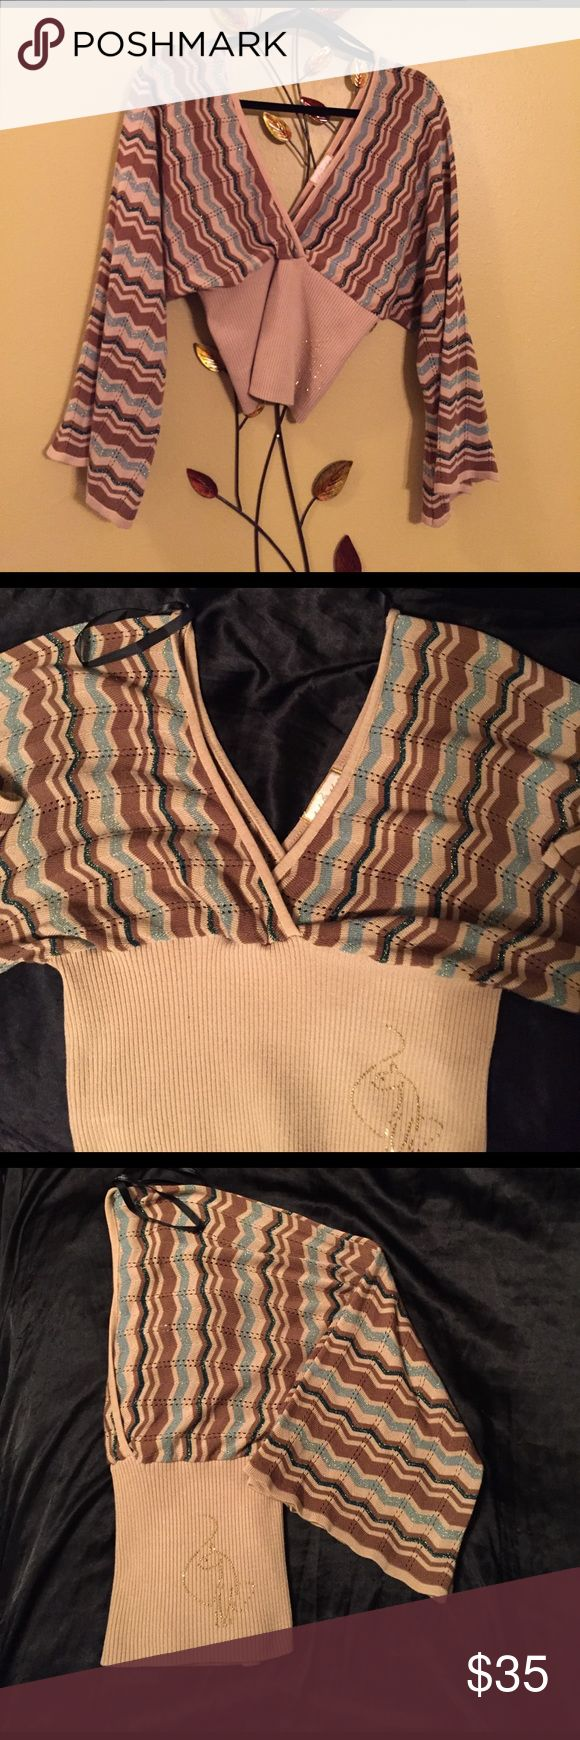 BABY PHAT Authentic V-neck bell arm rib waist top BABY PHAT Authentic V-neck bell arm ribbed fitted waist top.  Beautiful multicolor chevron design with gold threading highlighting the green colors.  Gold studded Baby Phat Cat on front left of ribbed portion of top.  Excellent condition. Baby Phat Tops